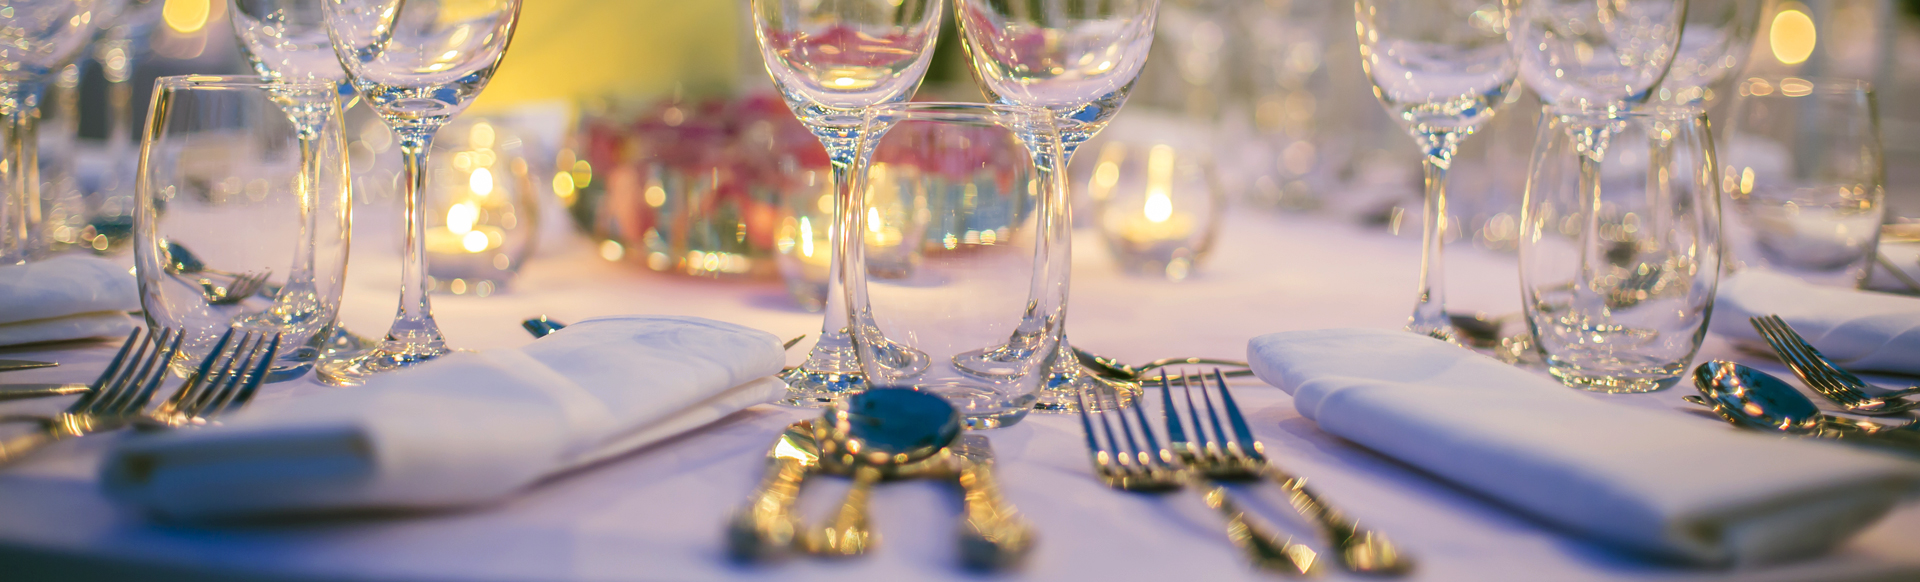 Dinner table close-up, with wine glasses, cutlery and candle lights placed in an elegant setting.